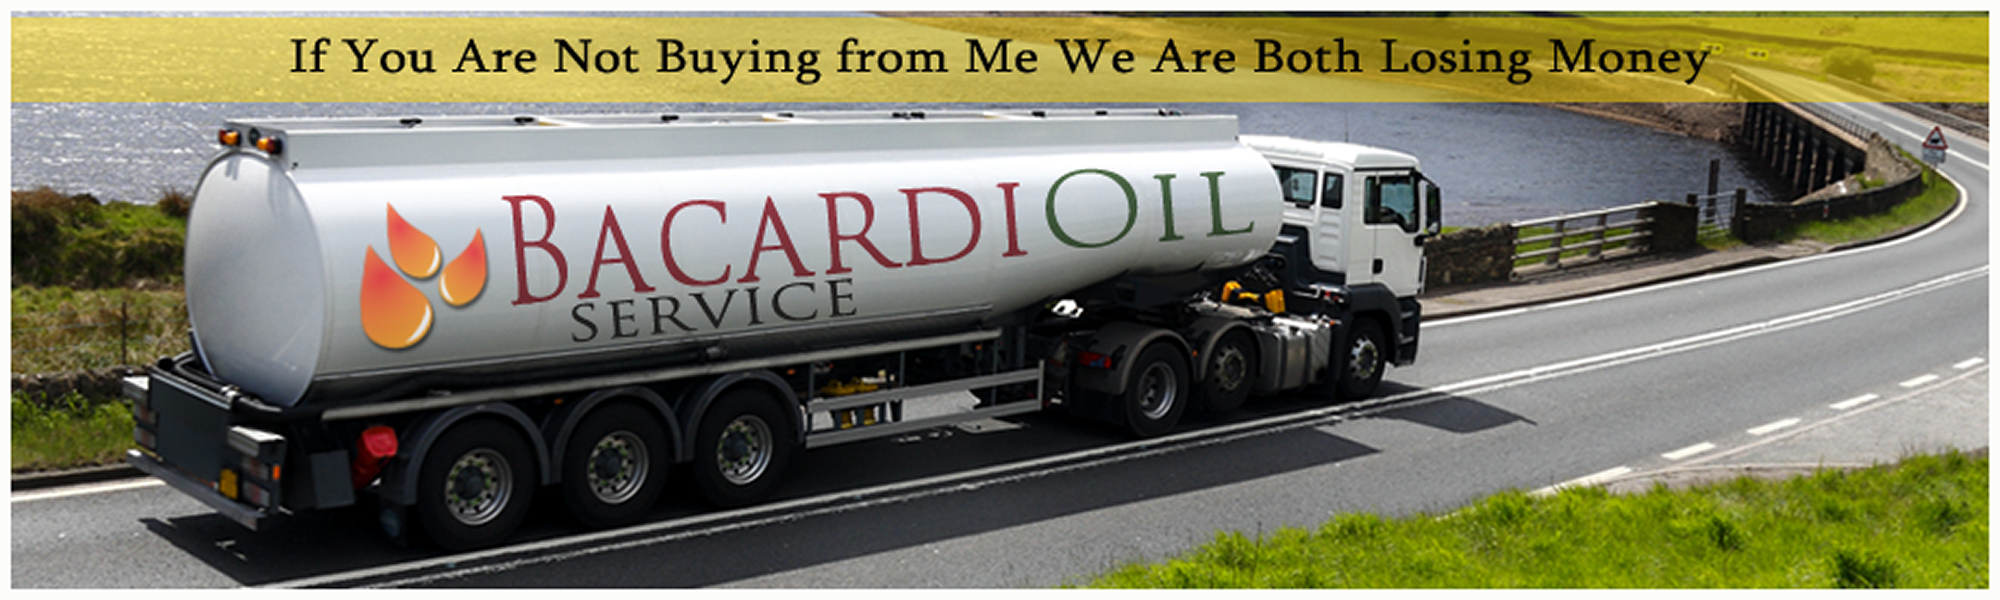 Bacardi Oil Services Image